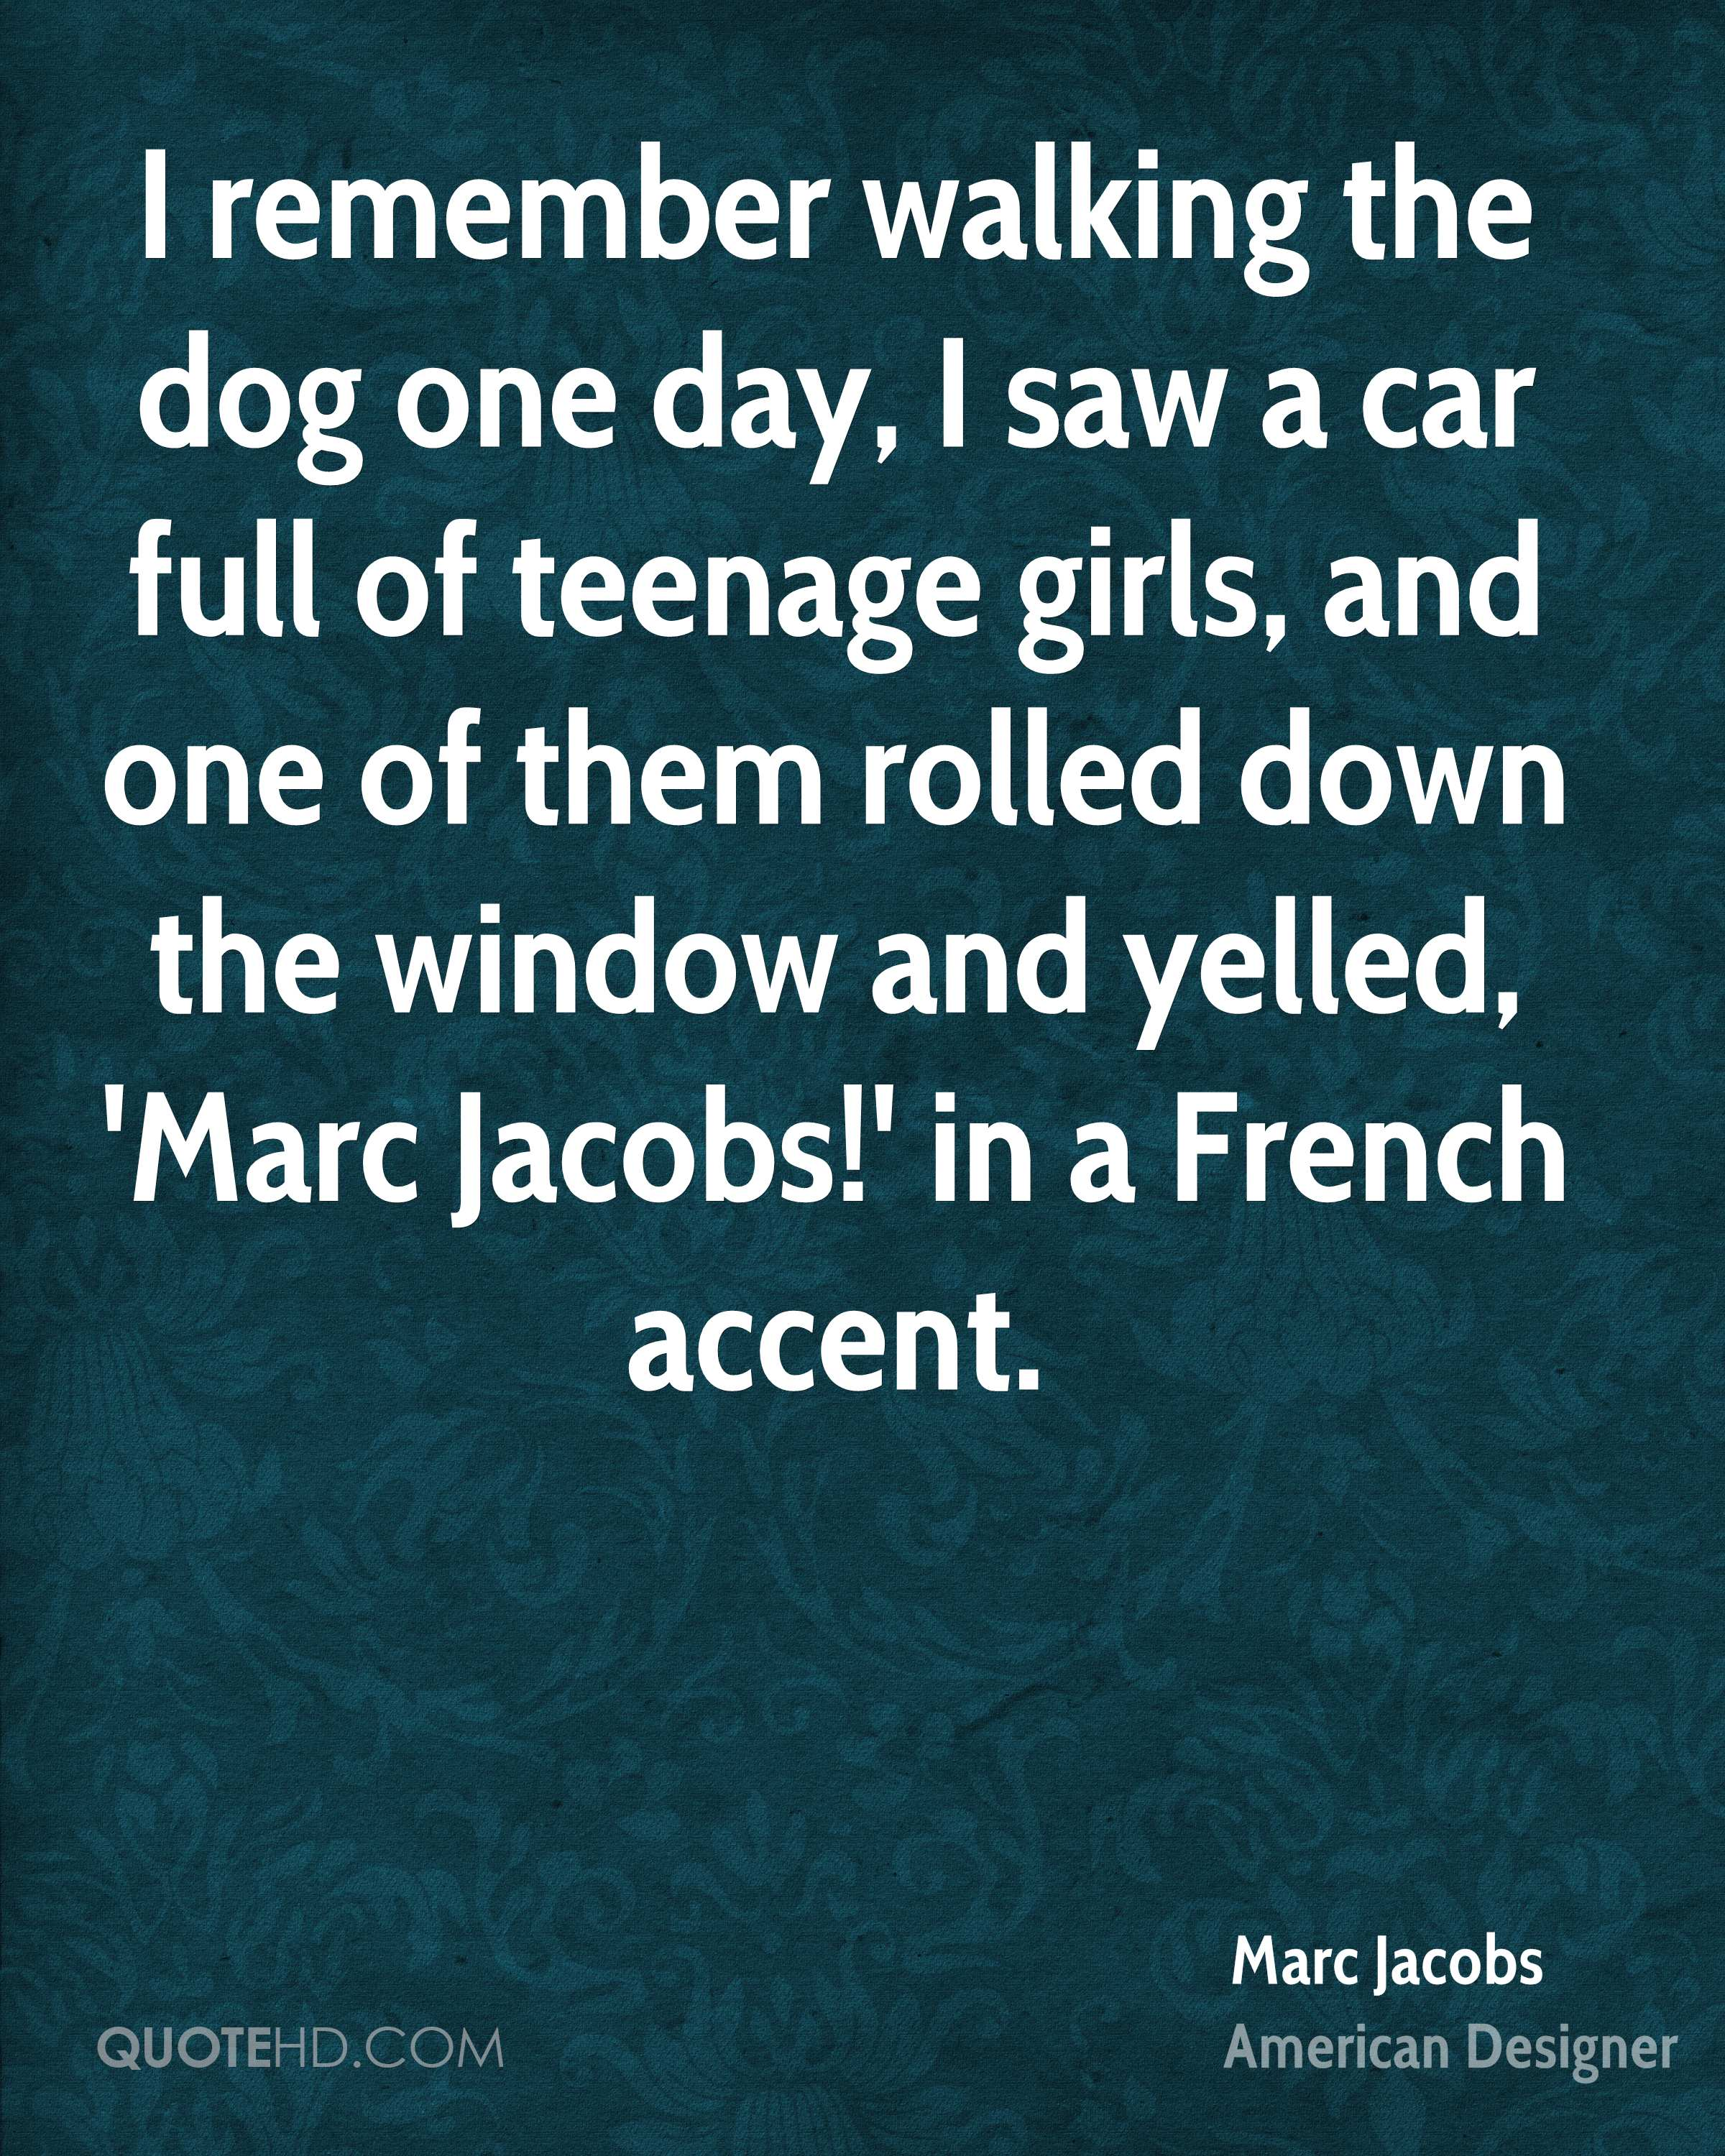 Quotes For Teenage Girls Marc Jacobs Car Quotes  Quotehd